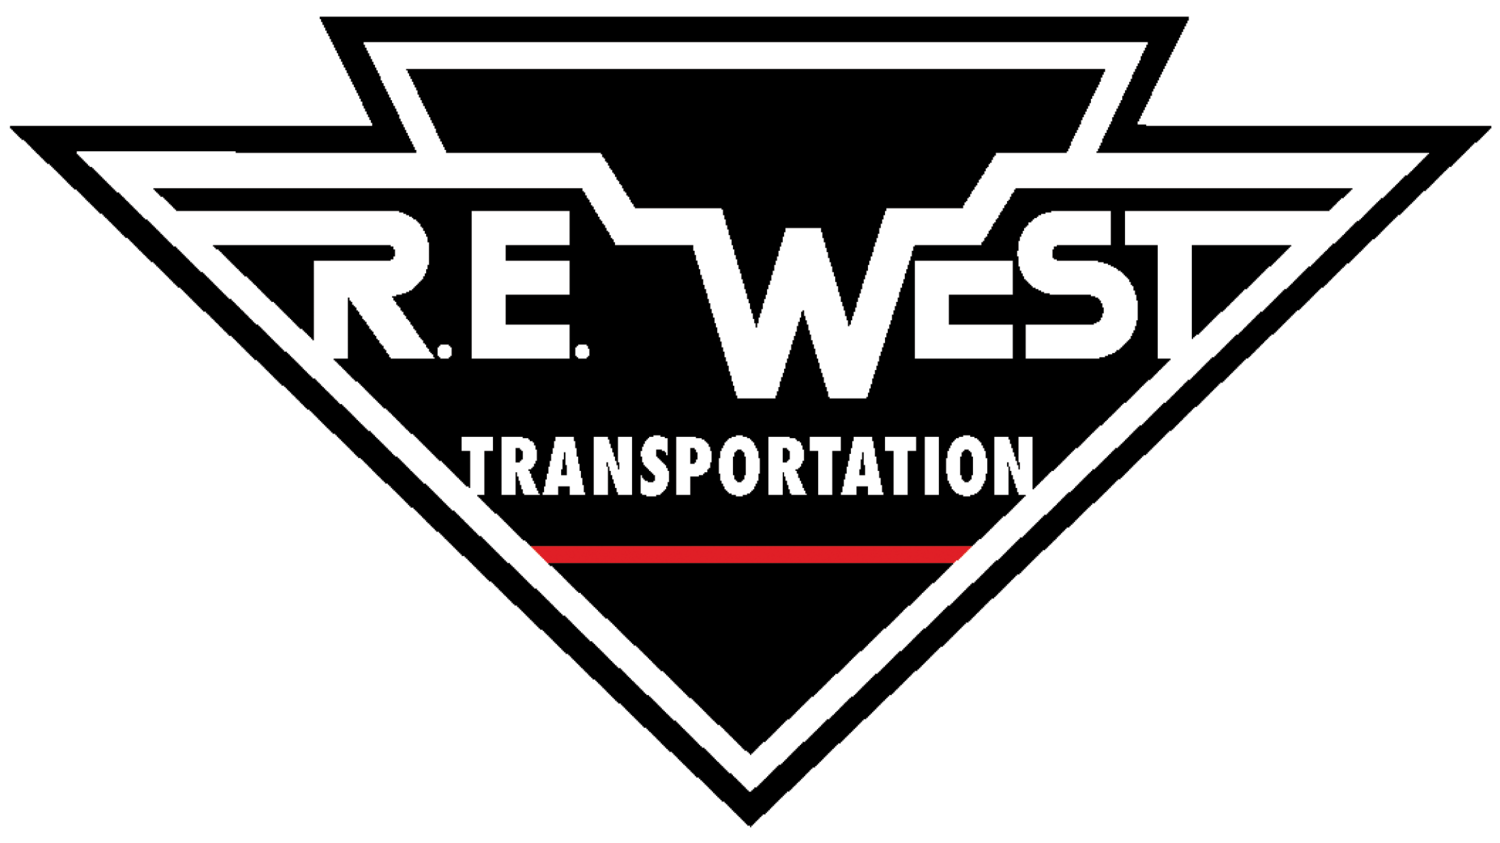 R. E. West Transportation